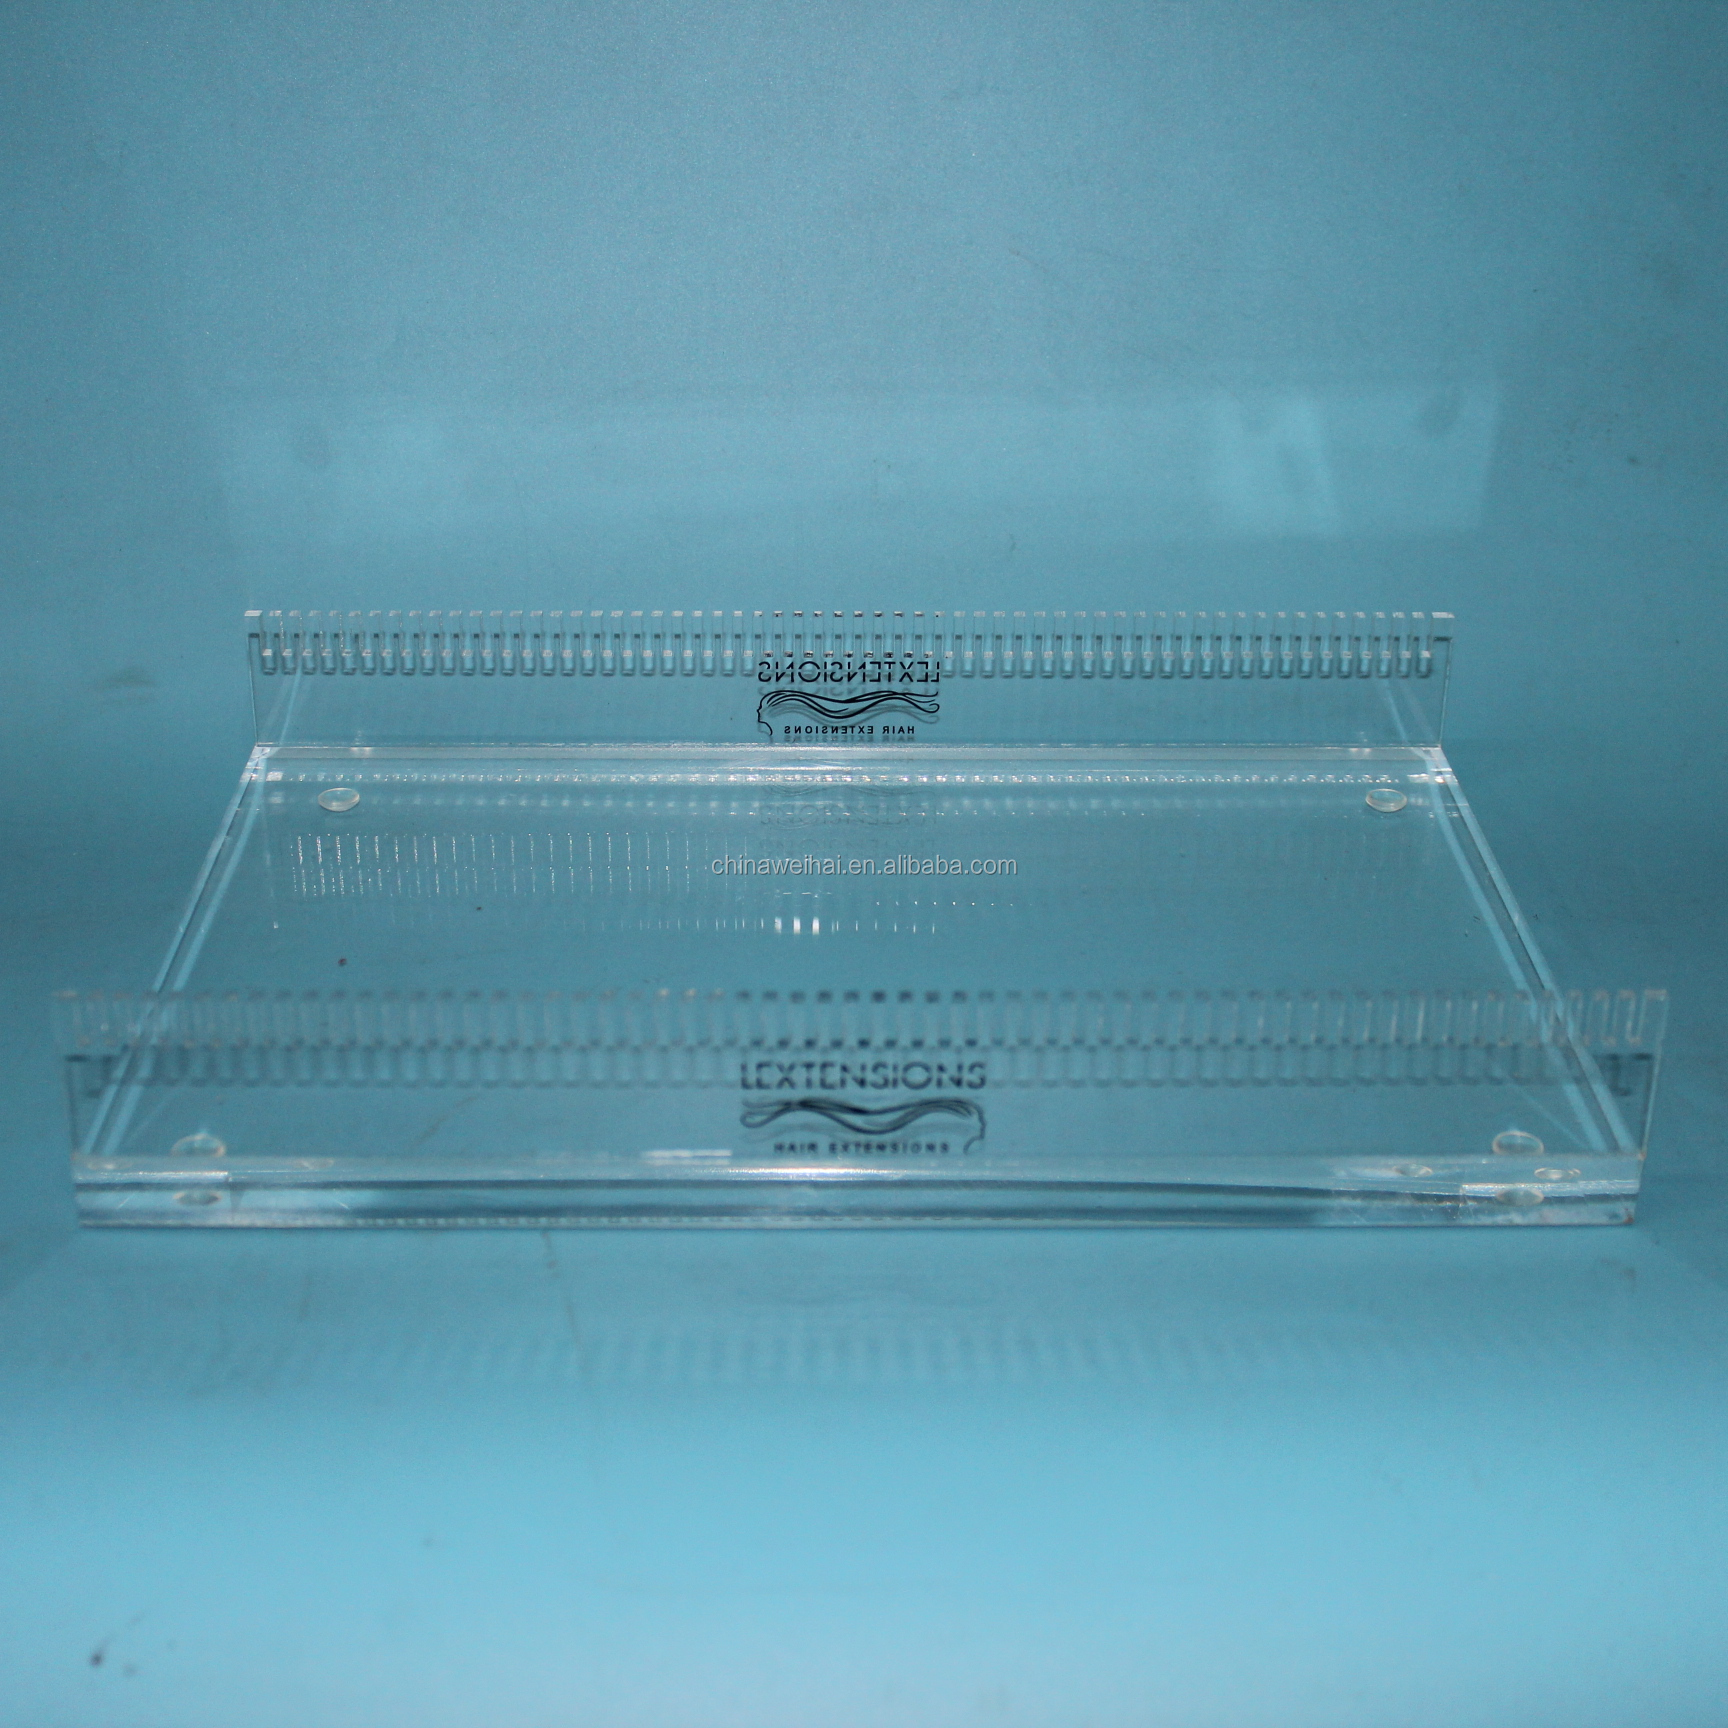 Yiwu Acrylic Hair Extension Display Stand